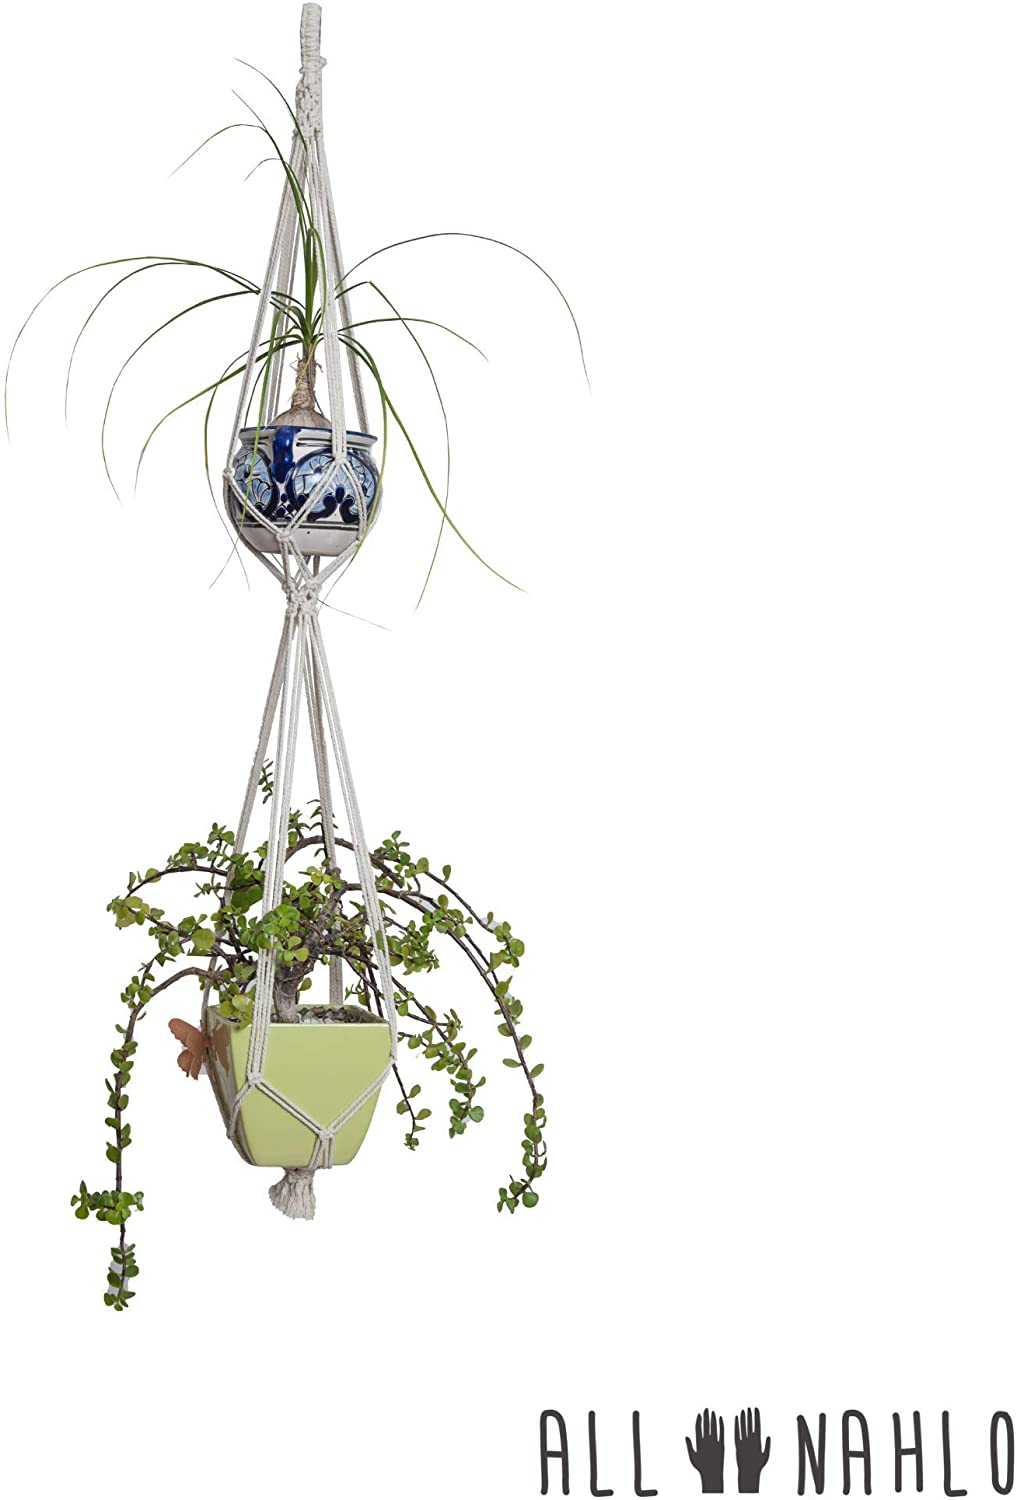 The Leticia Double Macrame Plant Hanger 1 Unit By All Nahlo Indoor Outdoor Hanging Planter Basket Cotton Rope Walmart Com Walmart Com